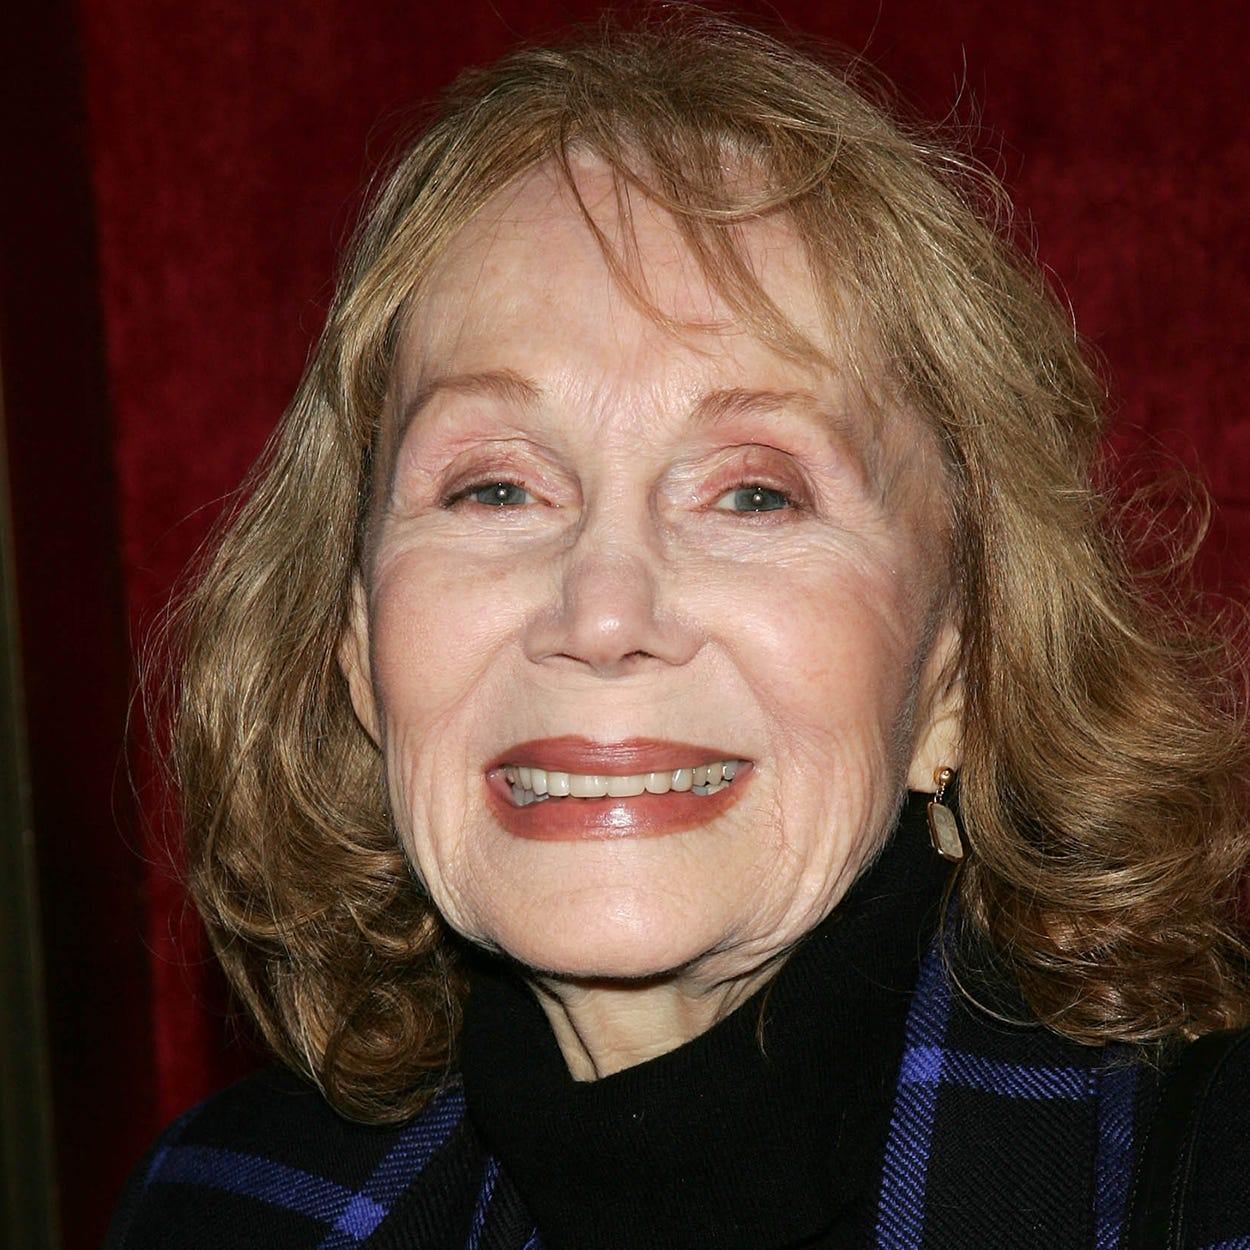 'Soap' actress Katherine Helmond dies at 89